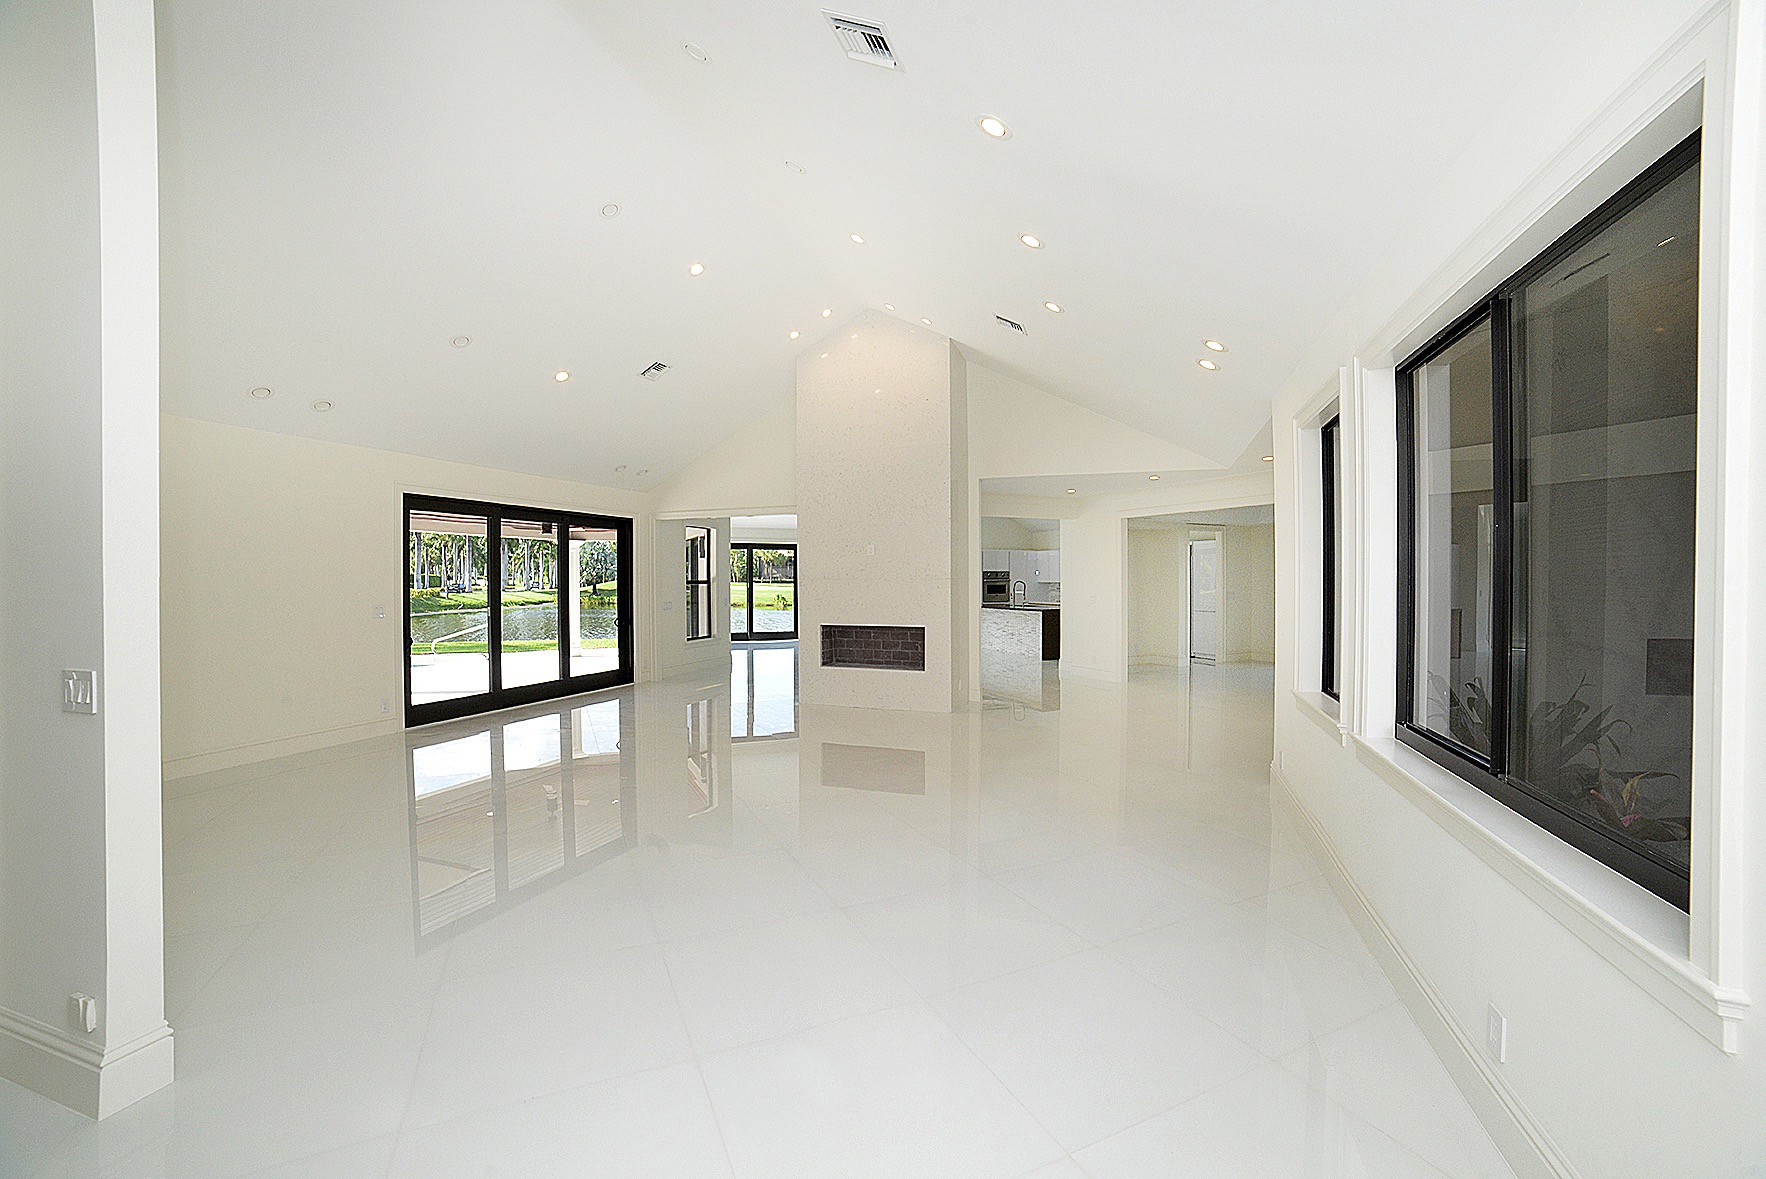 mag real estate & development construction general contractor builder renovation south florida boca raton new custom luxury home for sale interior design st. andrews country club 7026 ayrshire lane 6.jpg